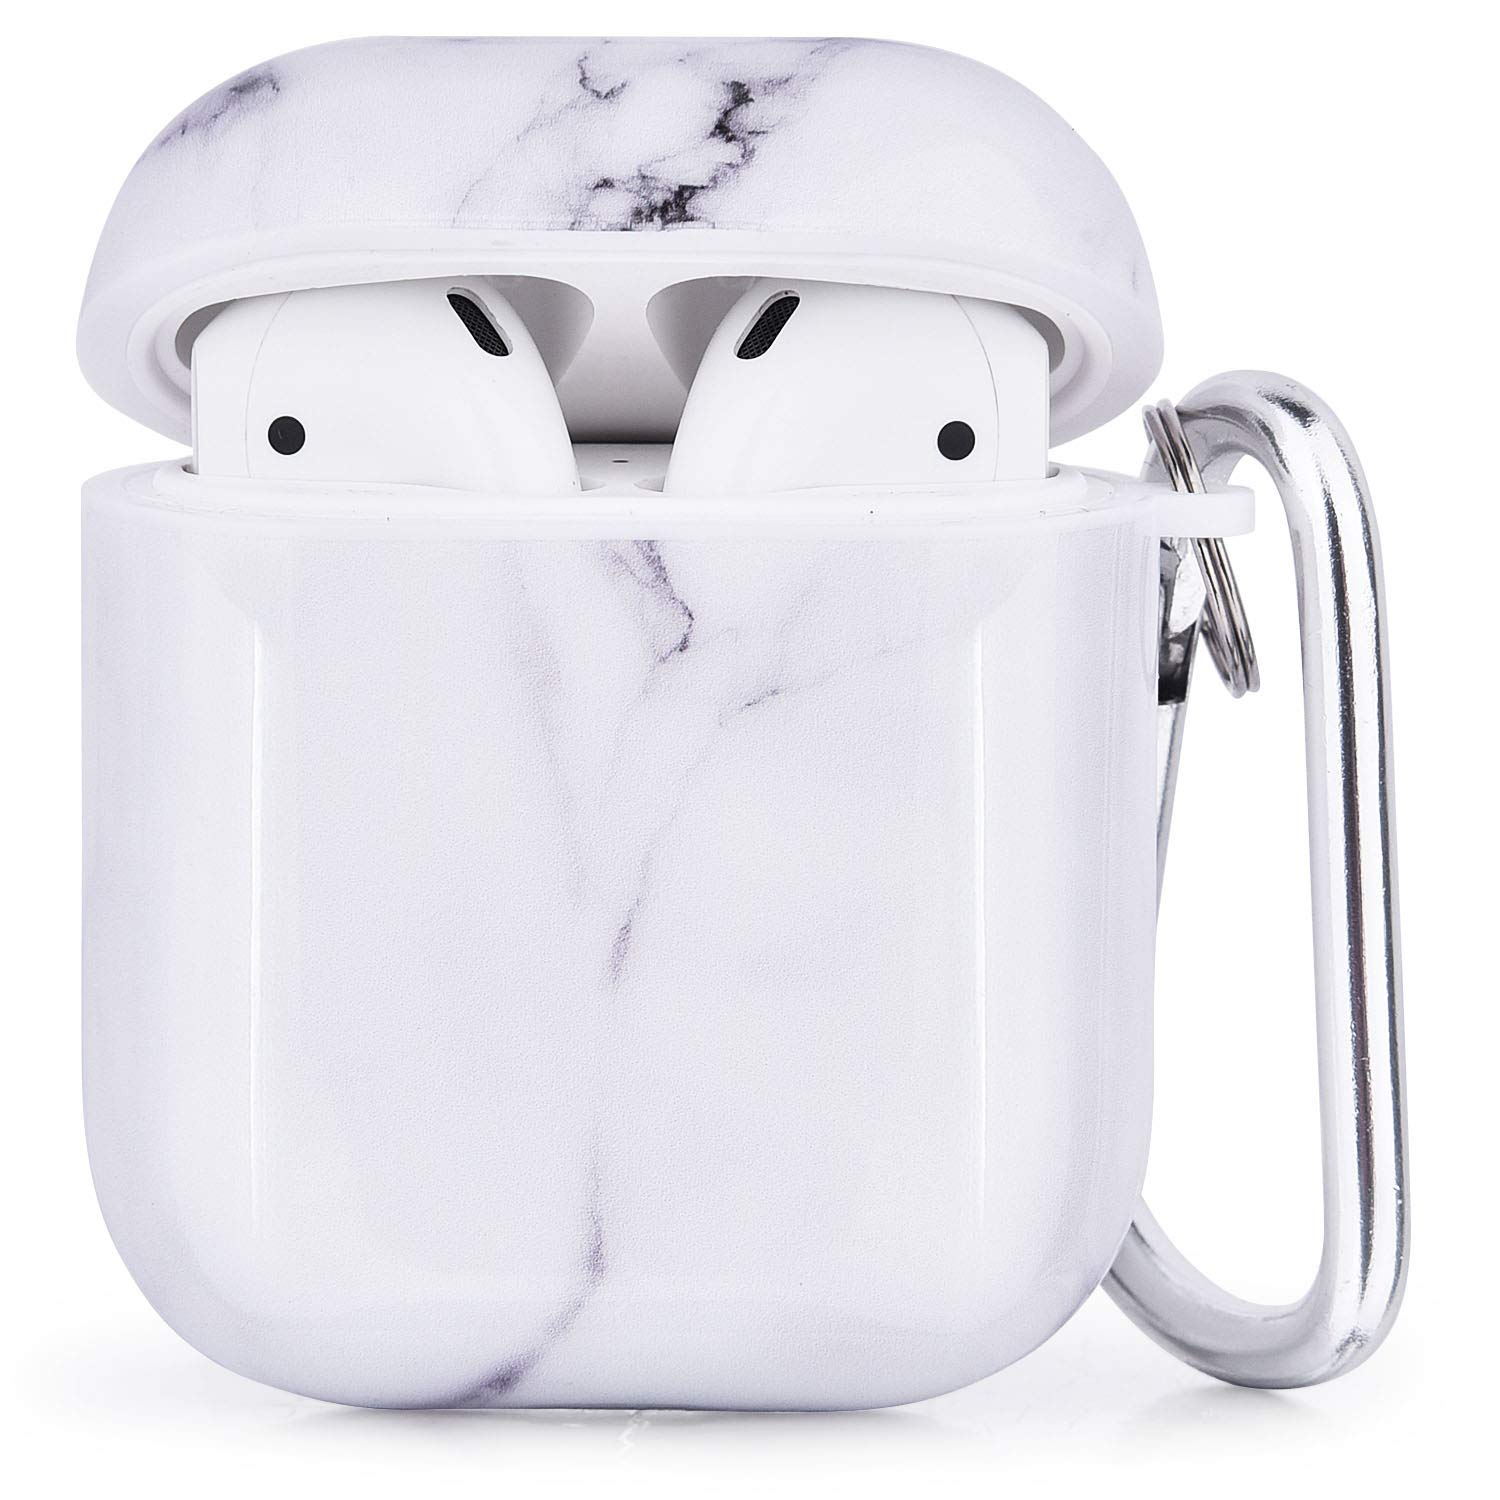 CAGOS - CAGOS Compatible with Airpods Case, 3 in 1 Cute Marble Accessories Protective Hard Case Cover Portable & Shockproof Women Girls Men with Keychain/Strap/Earhooks for Airpods 2/1 Charging Case - White